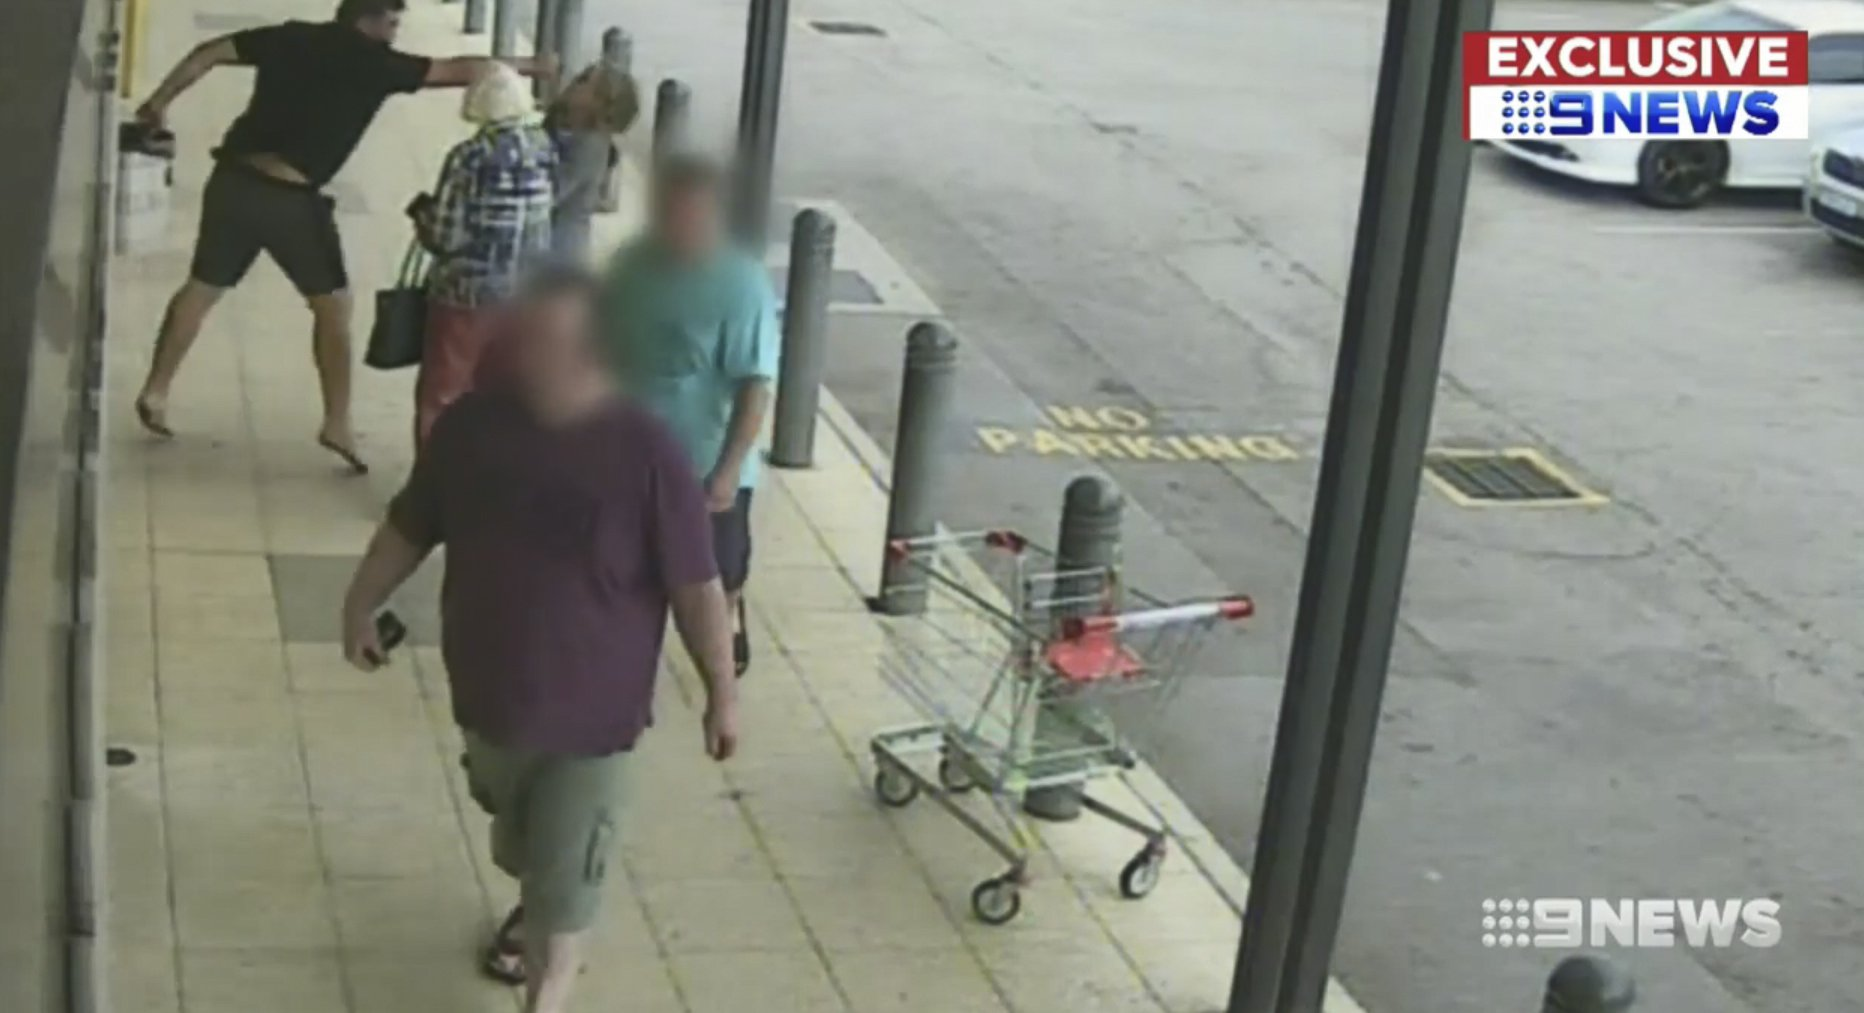 6448217 Shocking moment a 90-year-old grandmother is sent sprawling to the ground in a sickening attack as her granddaughter is sucker punched and fly-kicked by a thug